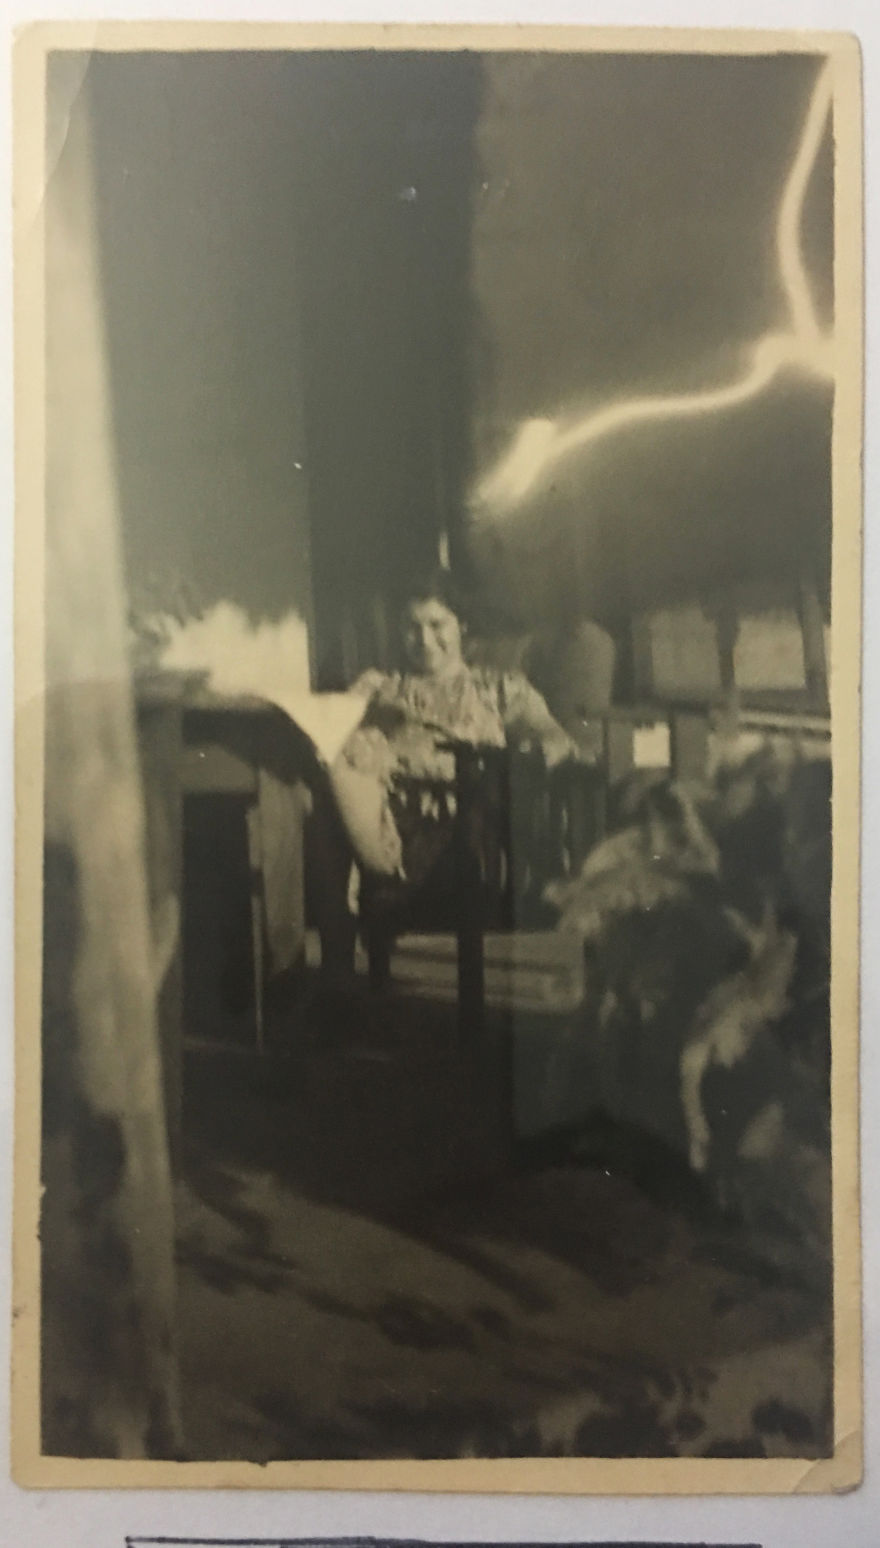 Vernacular Photo By Unknown Person From The 1930s